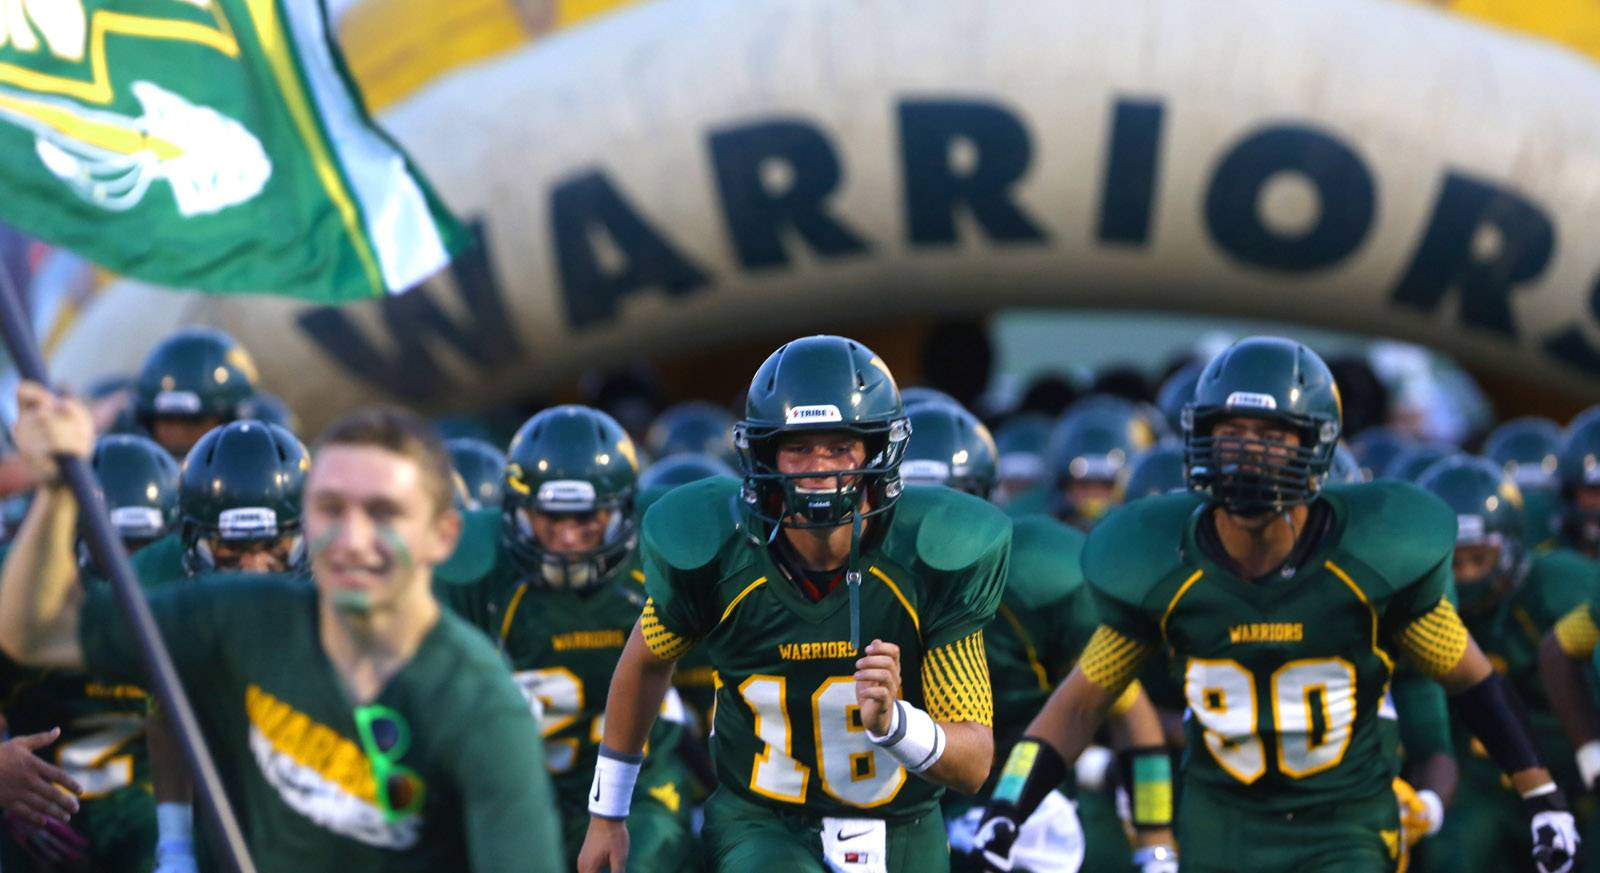 Images: Naperville Central at Waubonsie Valley football